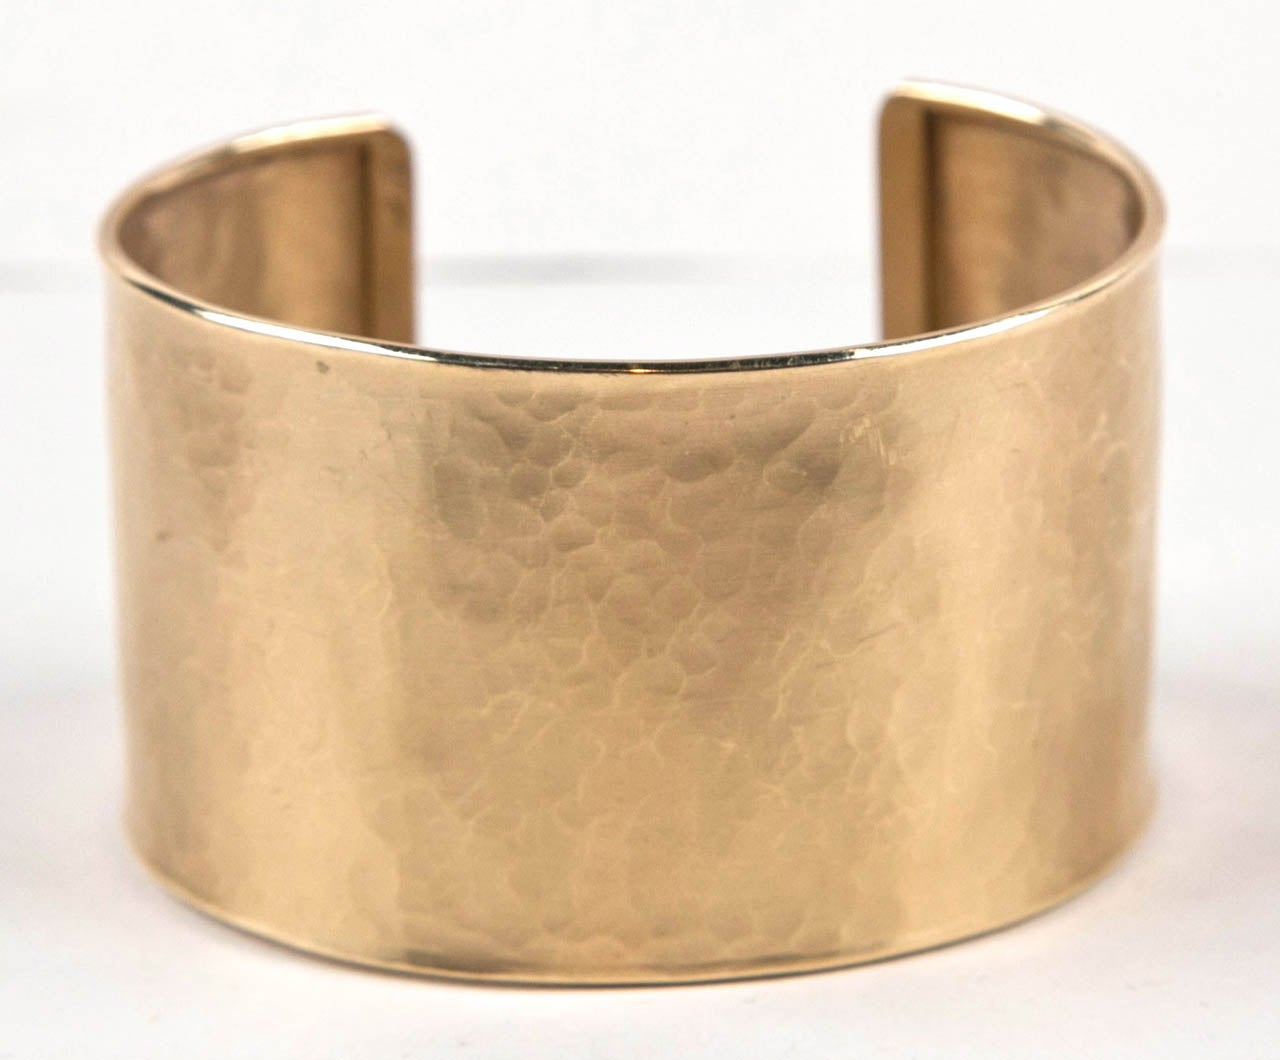 Handmade Pounded Gold Cuff Bracelet Presented by Jewelry and Such 3